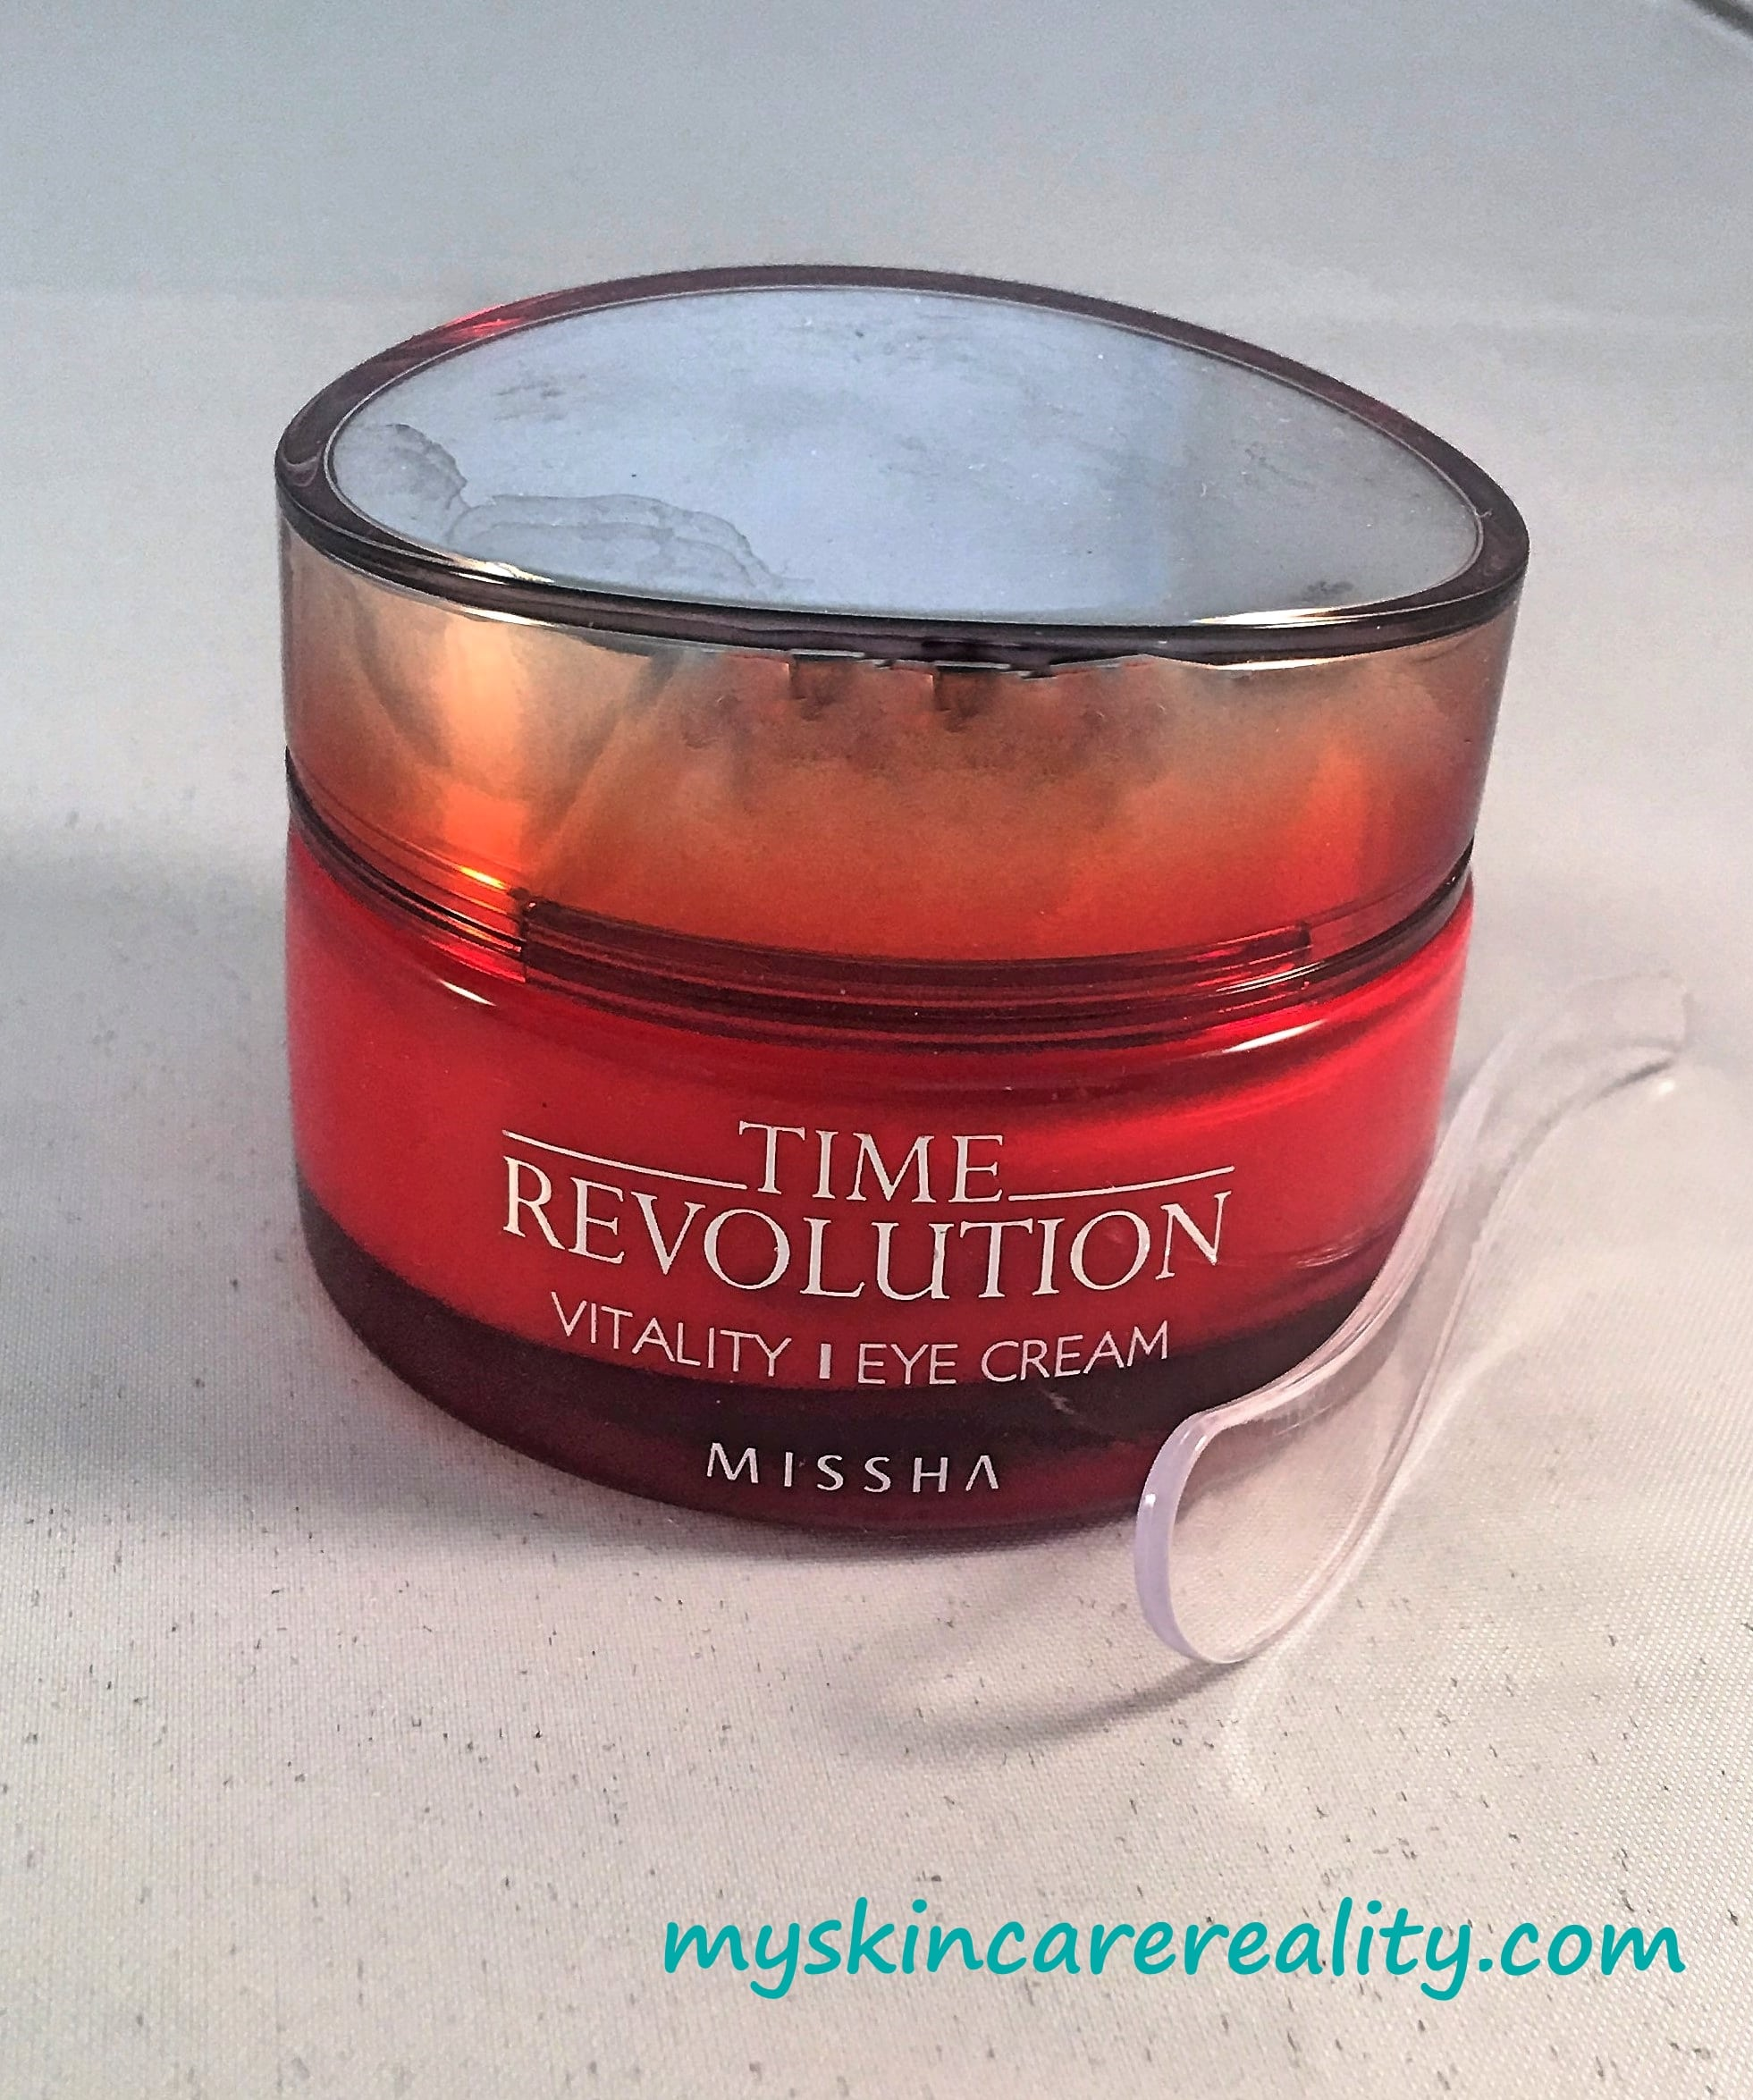 Missha Time Revolution Eye Cream |Skincare Review | My Skincare Reality